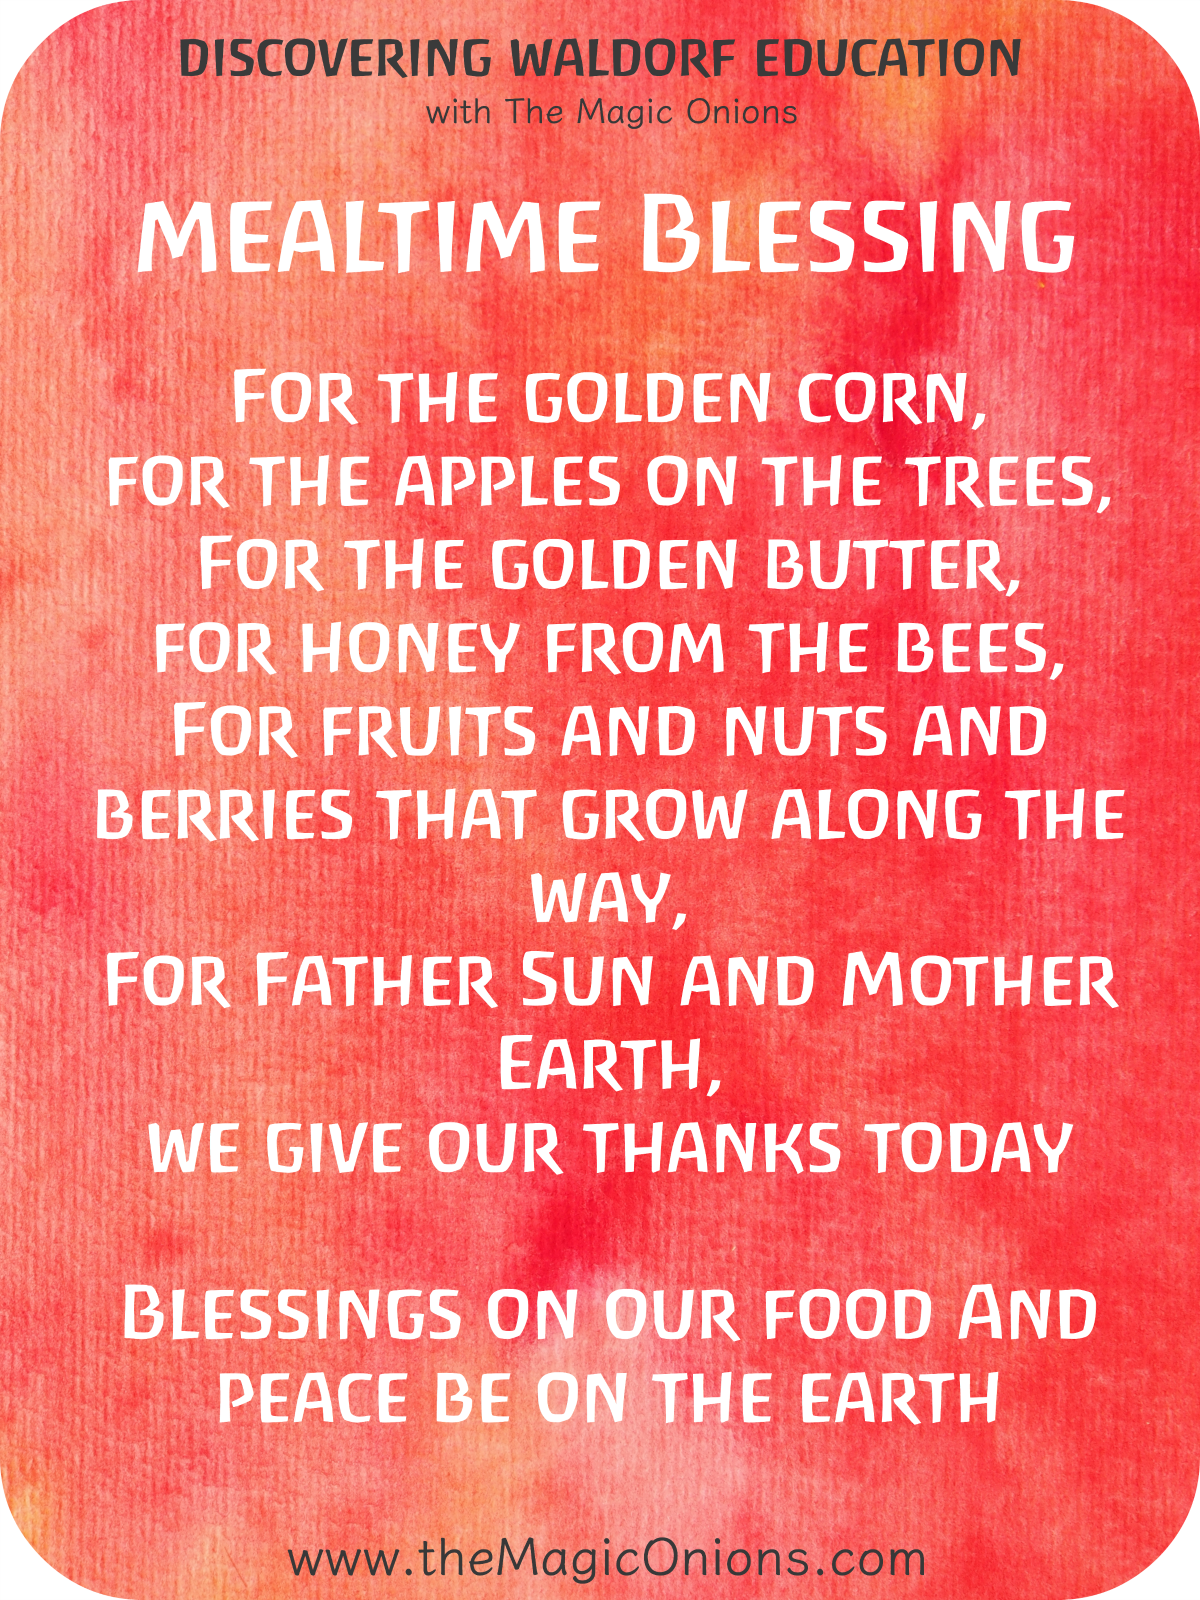 Beautiful Waldorf Mealtime Blessing Verse for Food - For the golden corn, for the apples on the trees